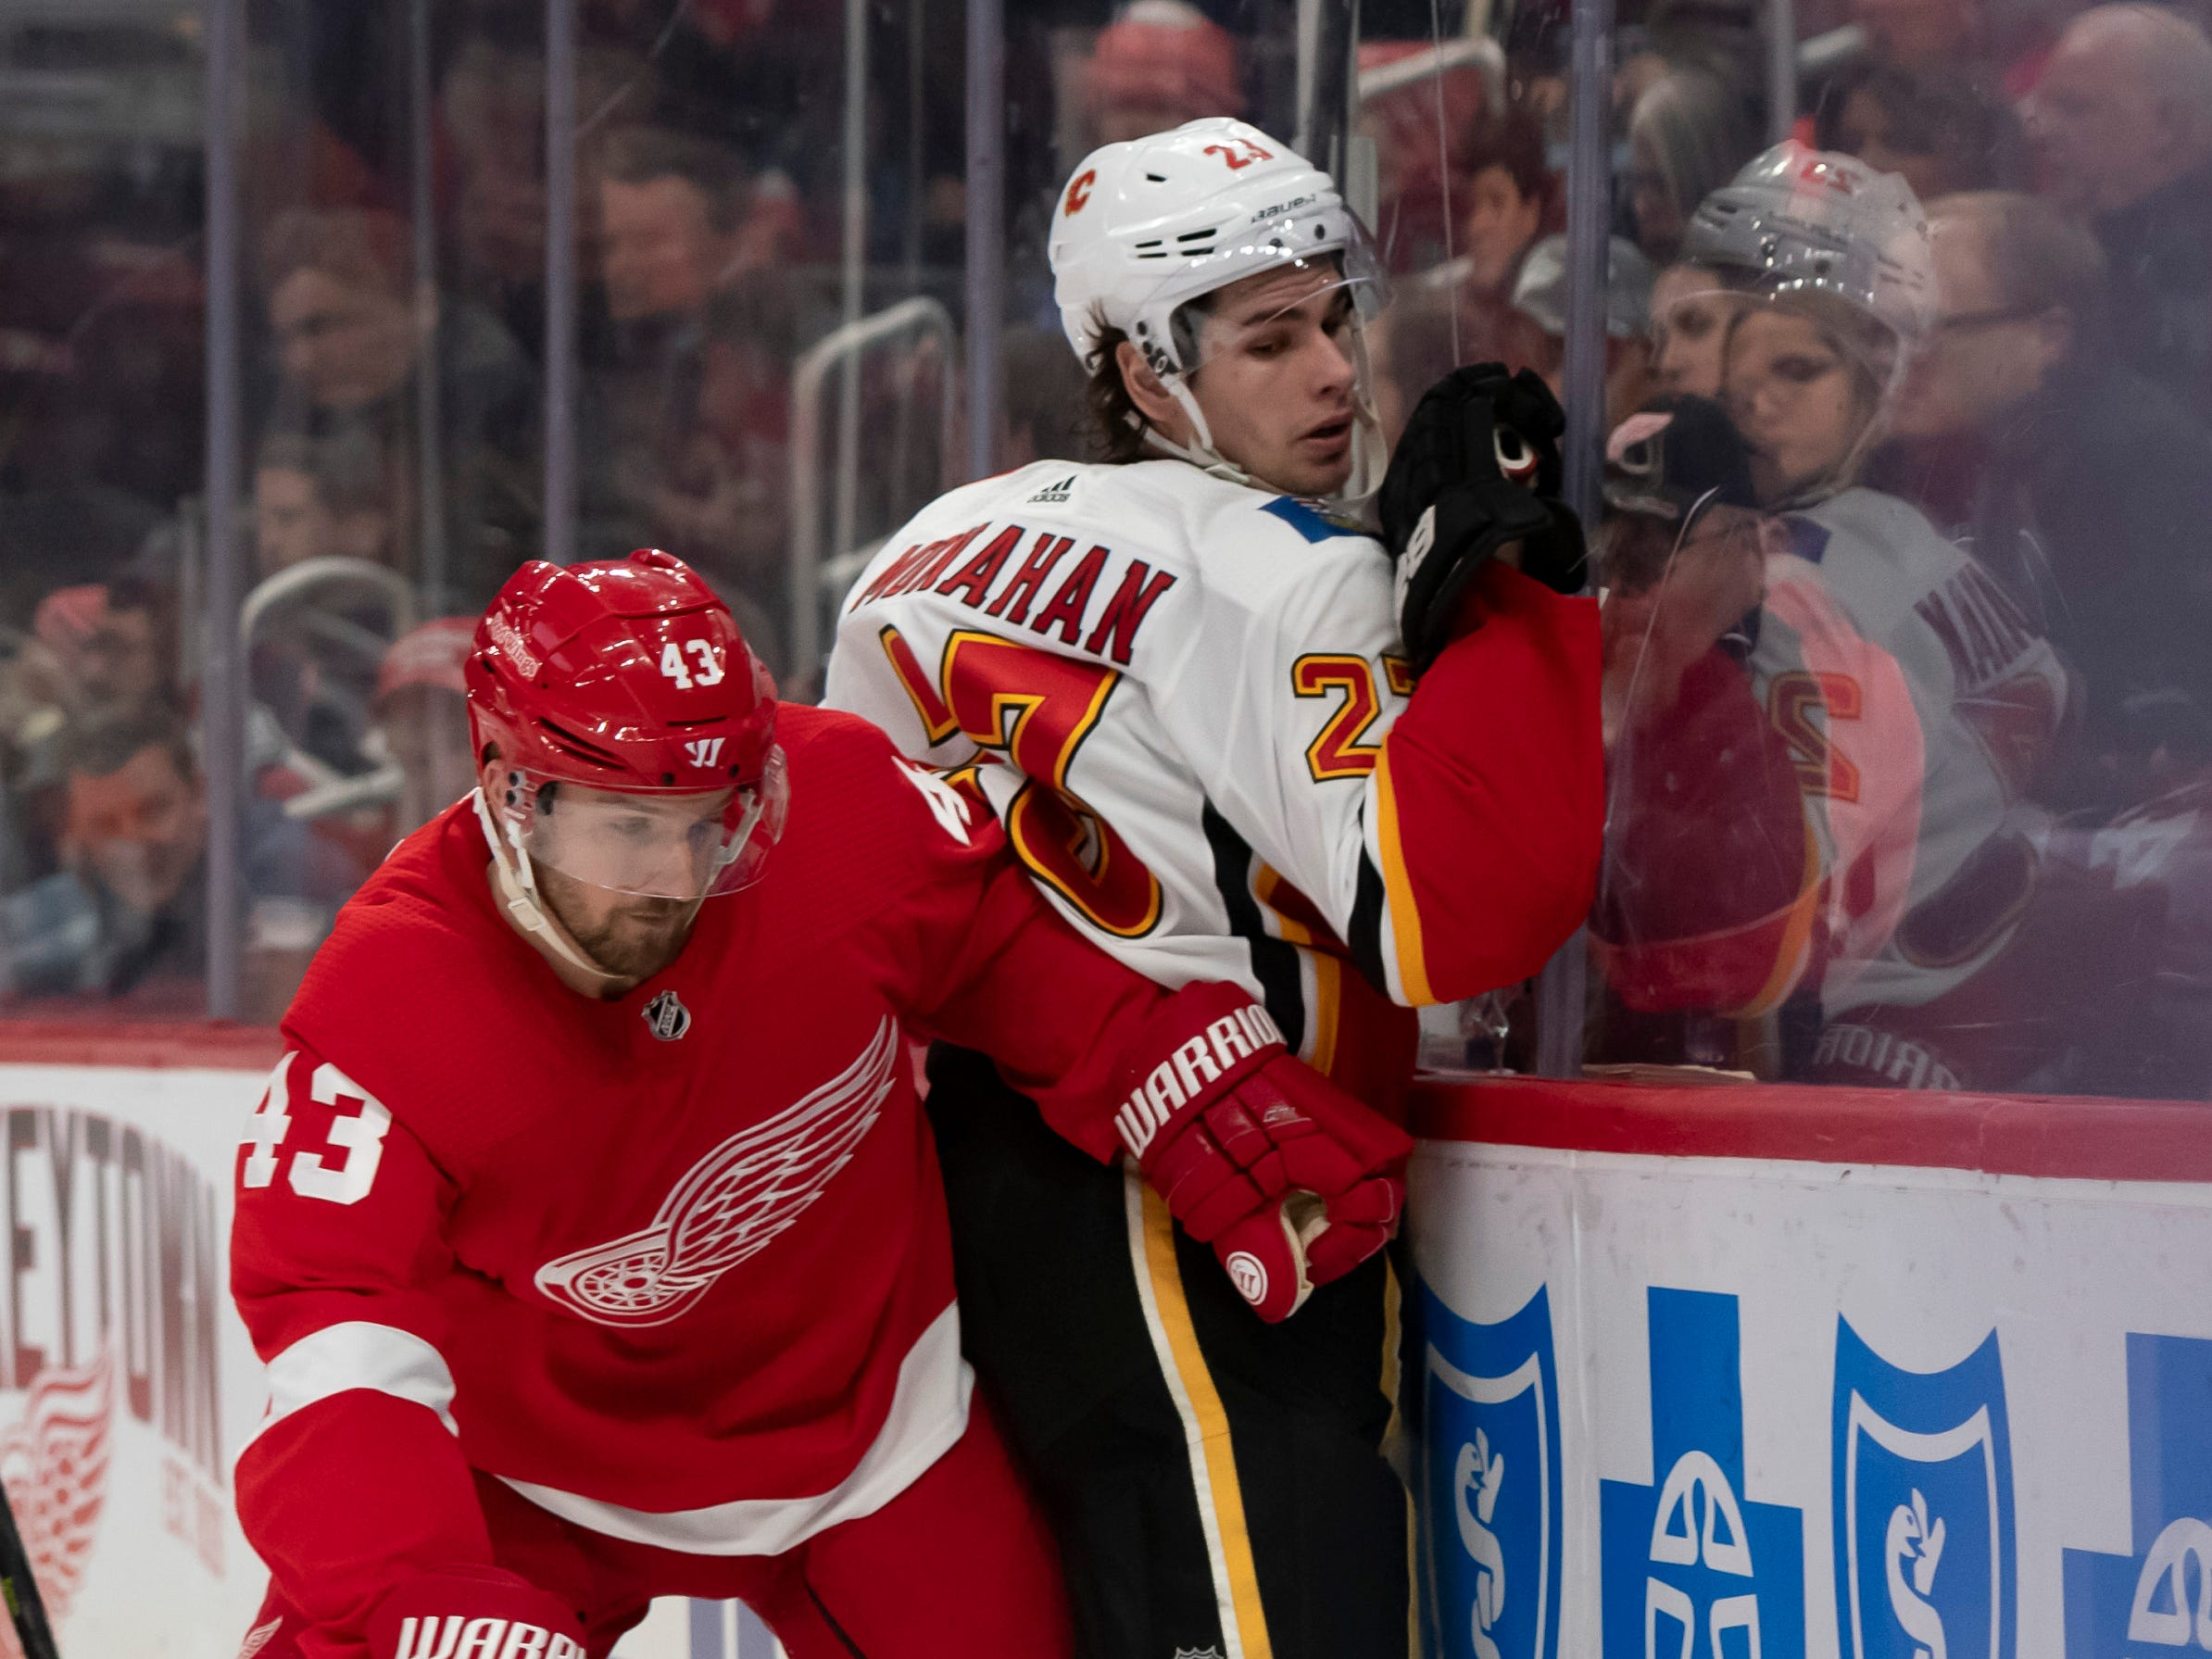 Detroit center Darren Helm checks Calgary center Sean Monahan in the first period.               Photos are of the Detroit Red Wings vs. the Calgary Flames, at Little Caesars Arena, in Detroit, January 2, 2019.  (David Guralnick / The Detroit News)